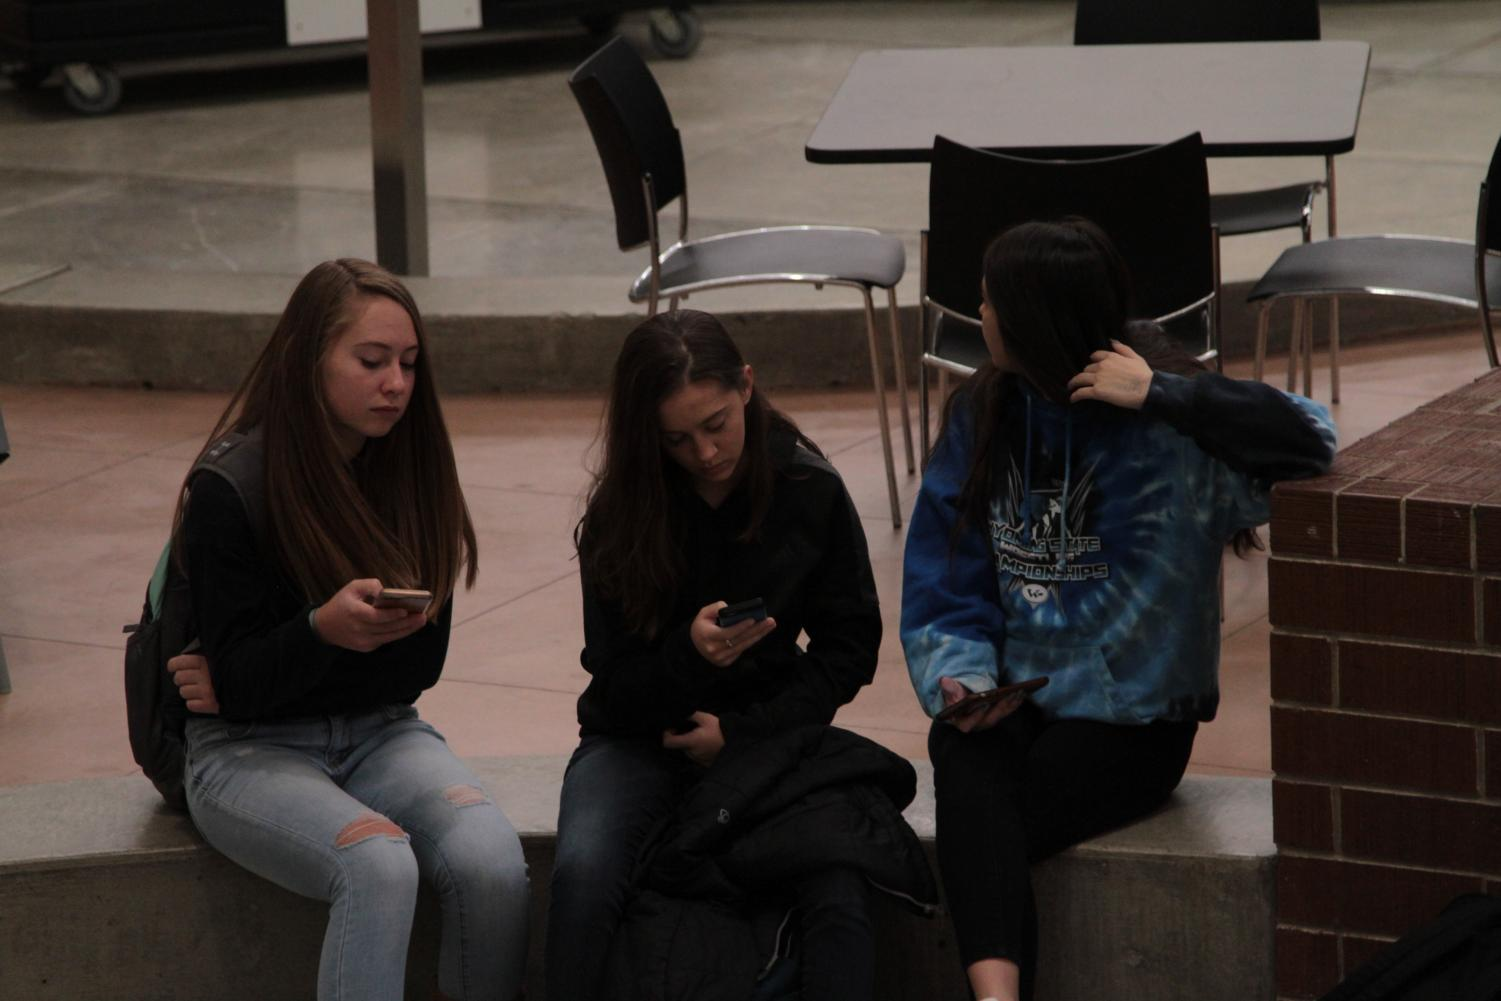 A group of students sit in the mall, each one with a cell phone in hand.